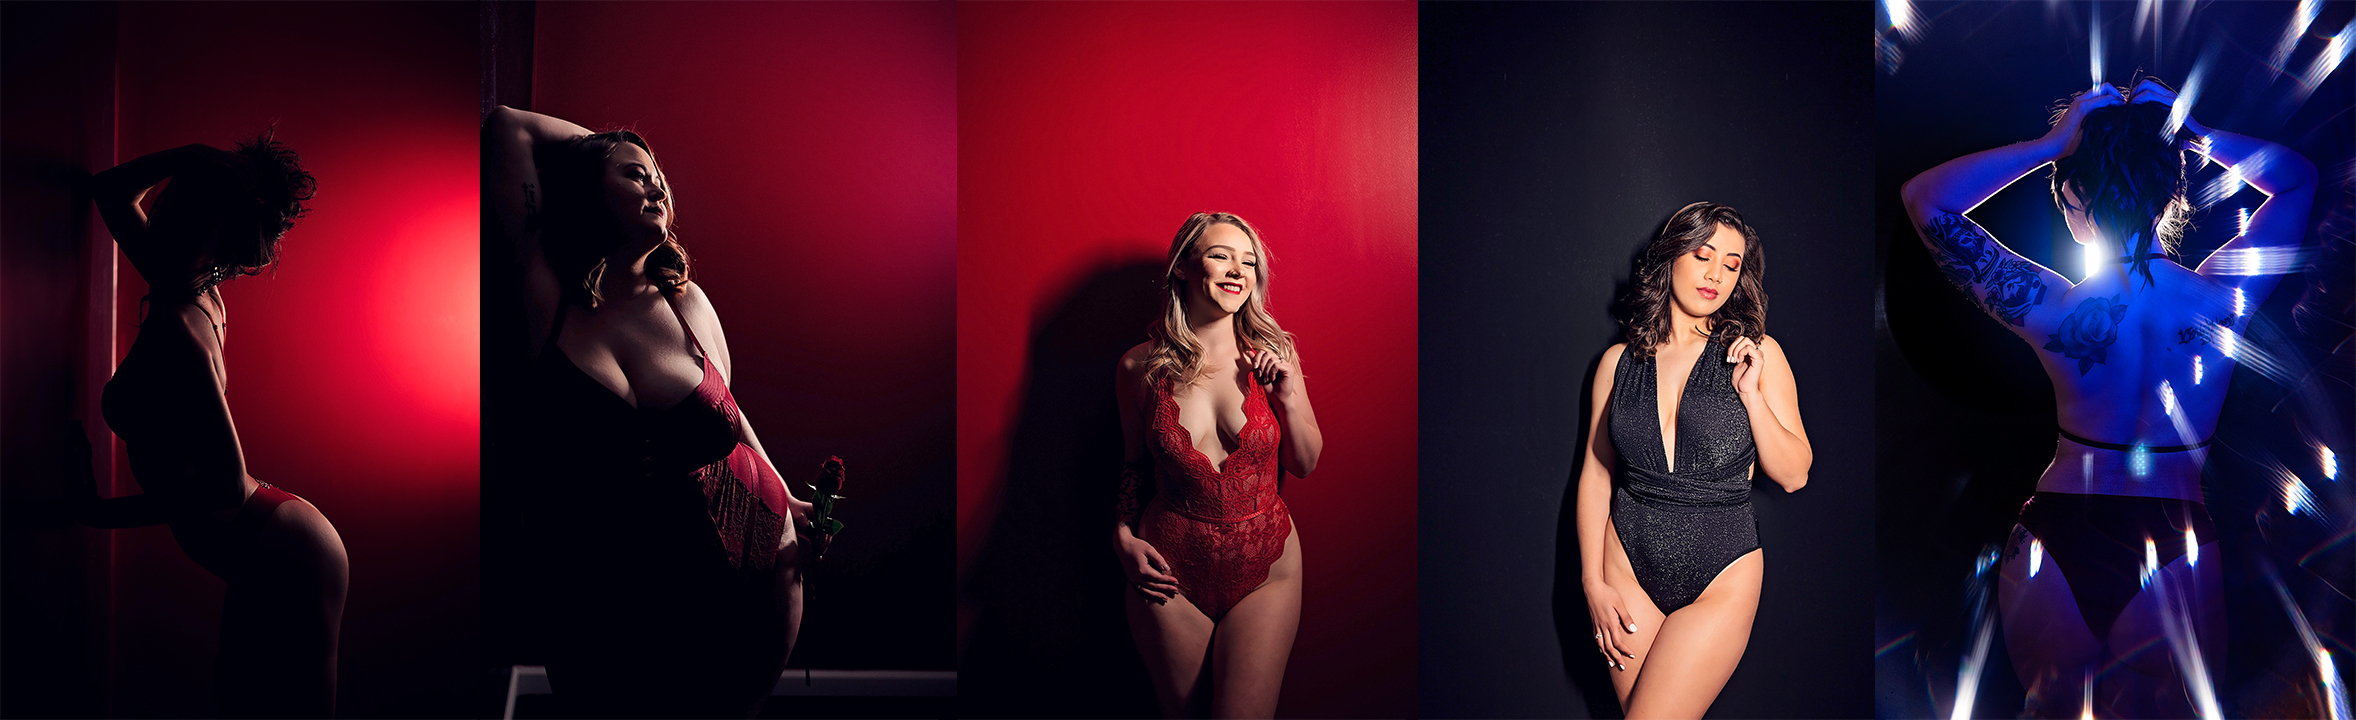 Red Room Boudoir Set Highlight